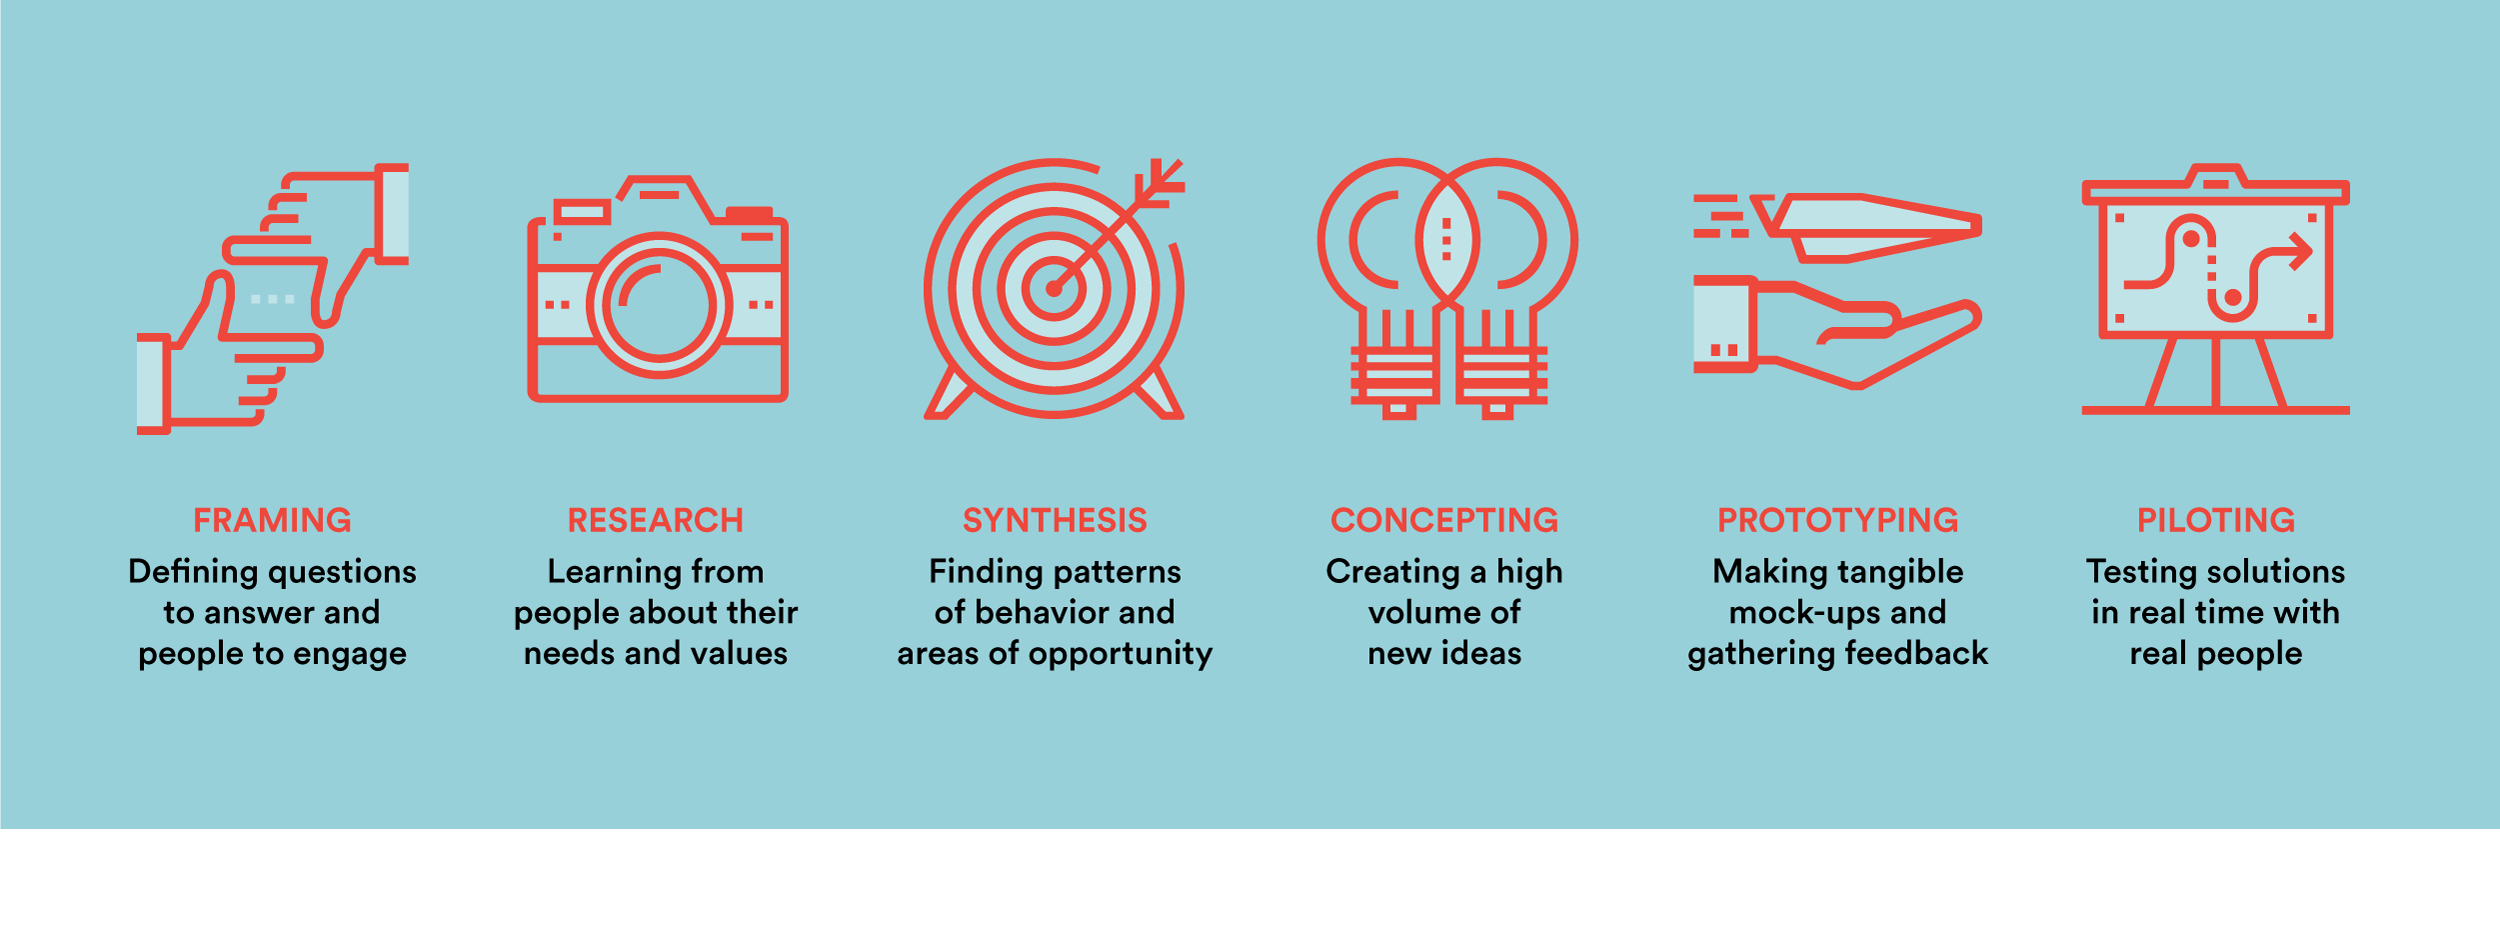 The Human-Centered Design Process - Greater Good Studio